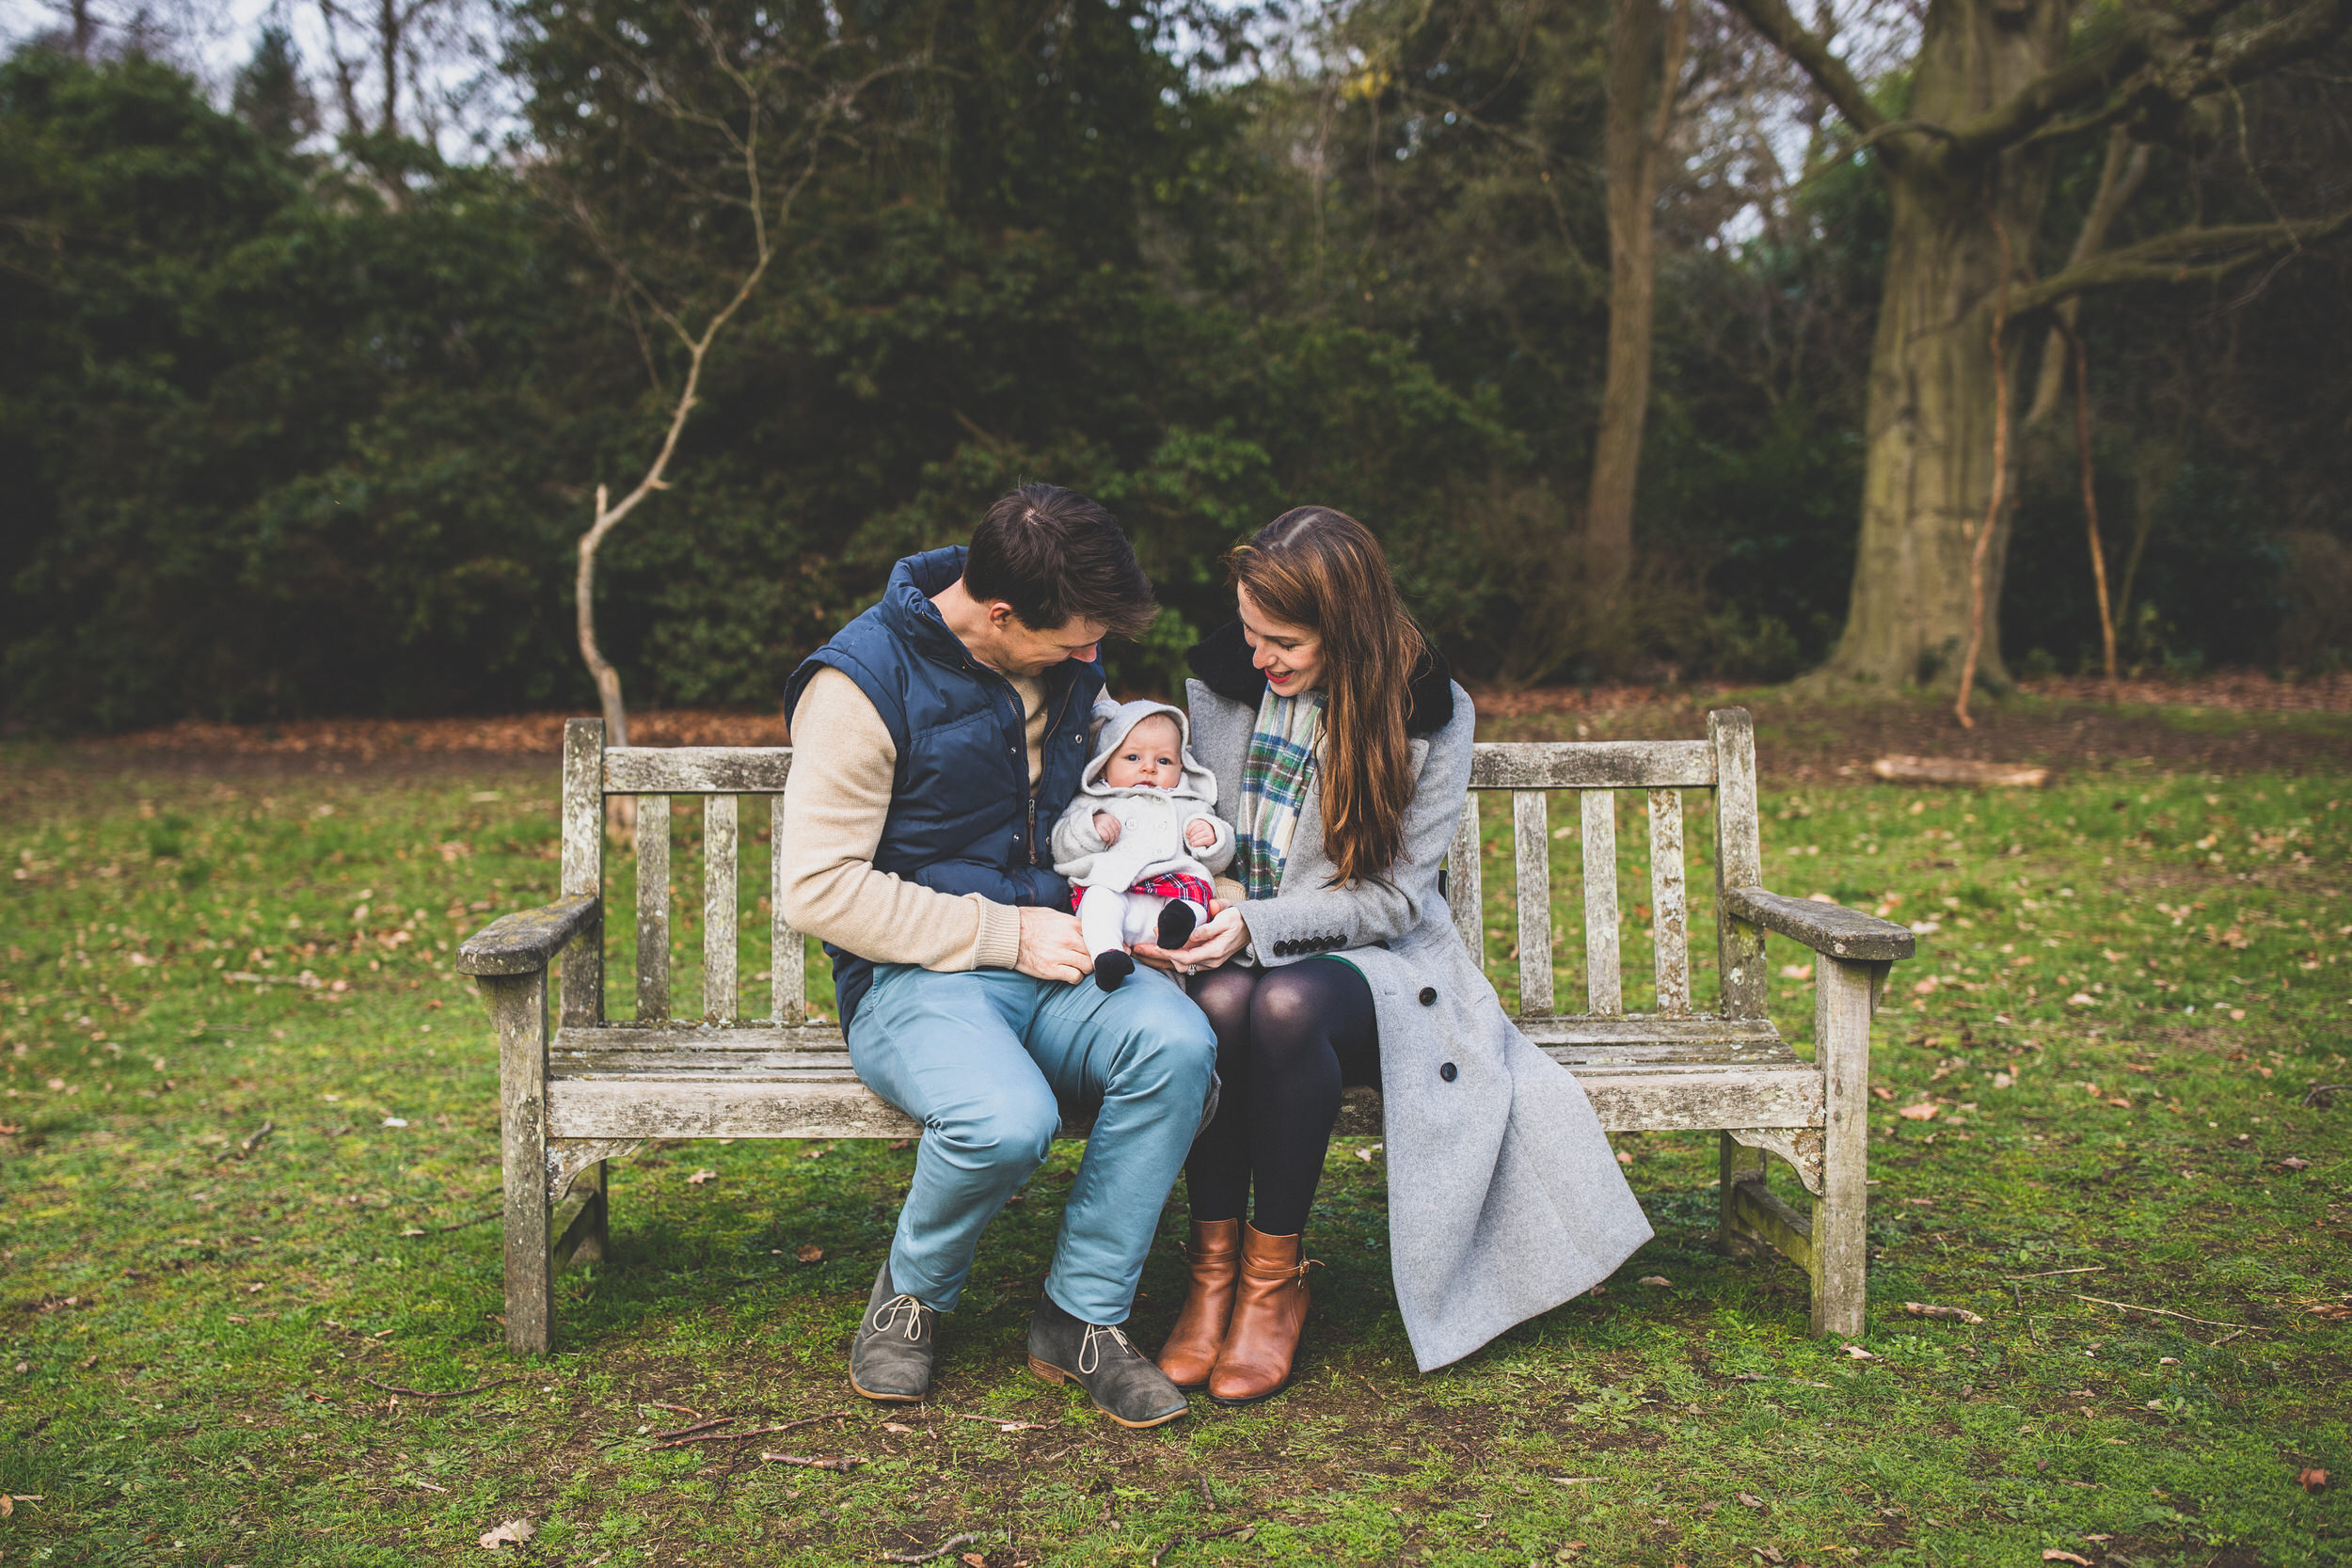 Northern Beaches Family session in a park